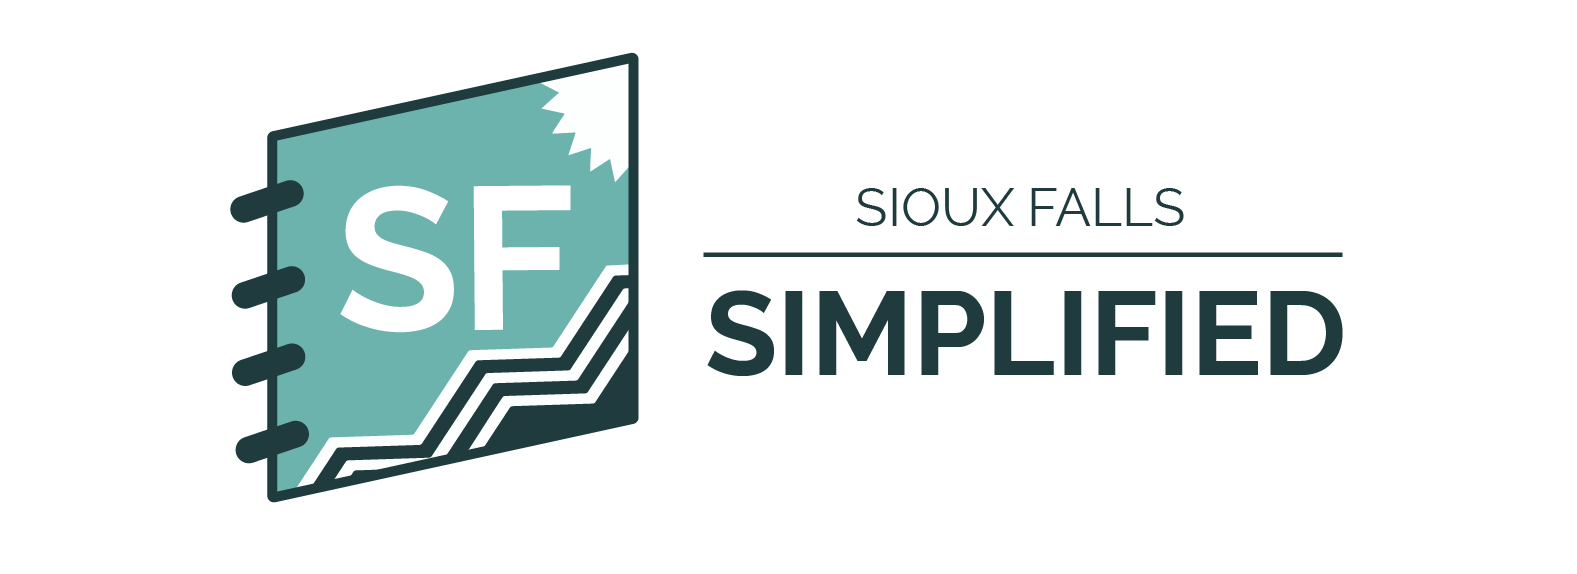 Sioux Falls Simplified